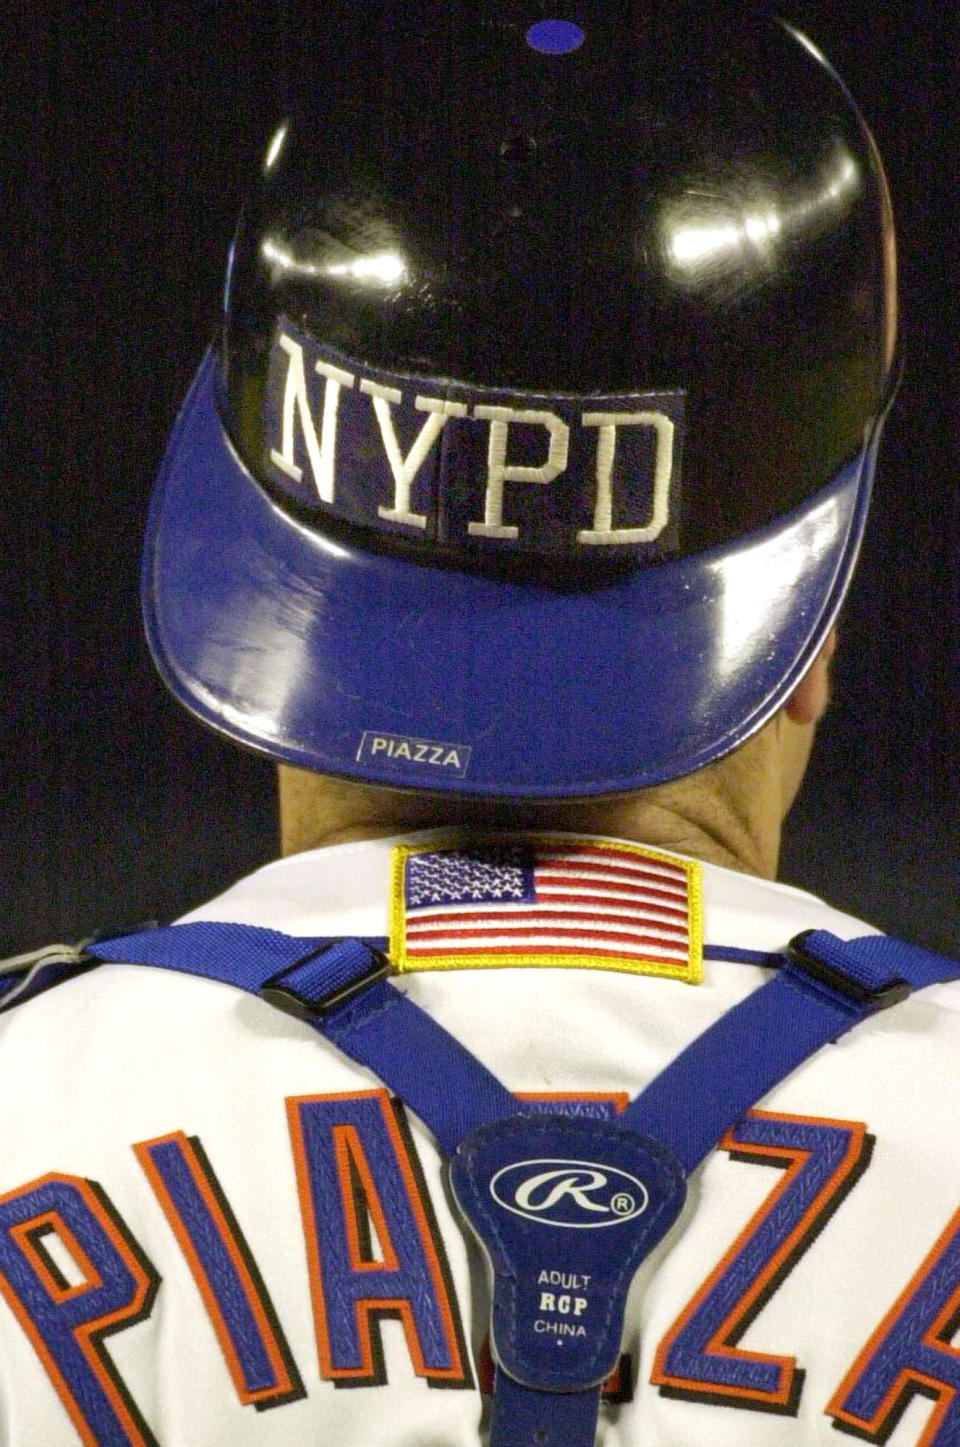 FILE - In this Sept. 21, 2001, file photo, New York Mets catcher Mike Piazza wears the NYPD logo on his helmet as he takes the field in the top of the fifth inning against the Atlanta Braves in New York. Sports teams will hold ceremonies Saturday, Sept.11, 2021, to mark the 20th anniversary of the Sept. 11 terrorist attacks. (AP Photo/Mark Lennihan, File)